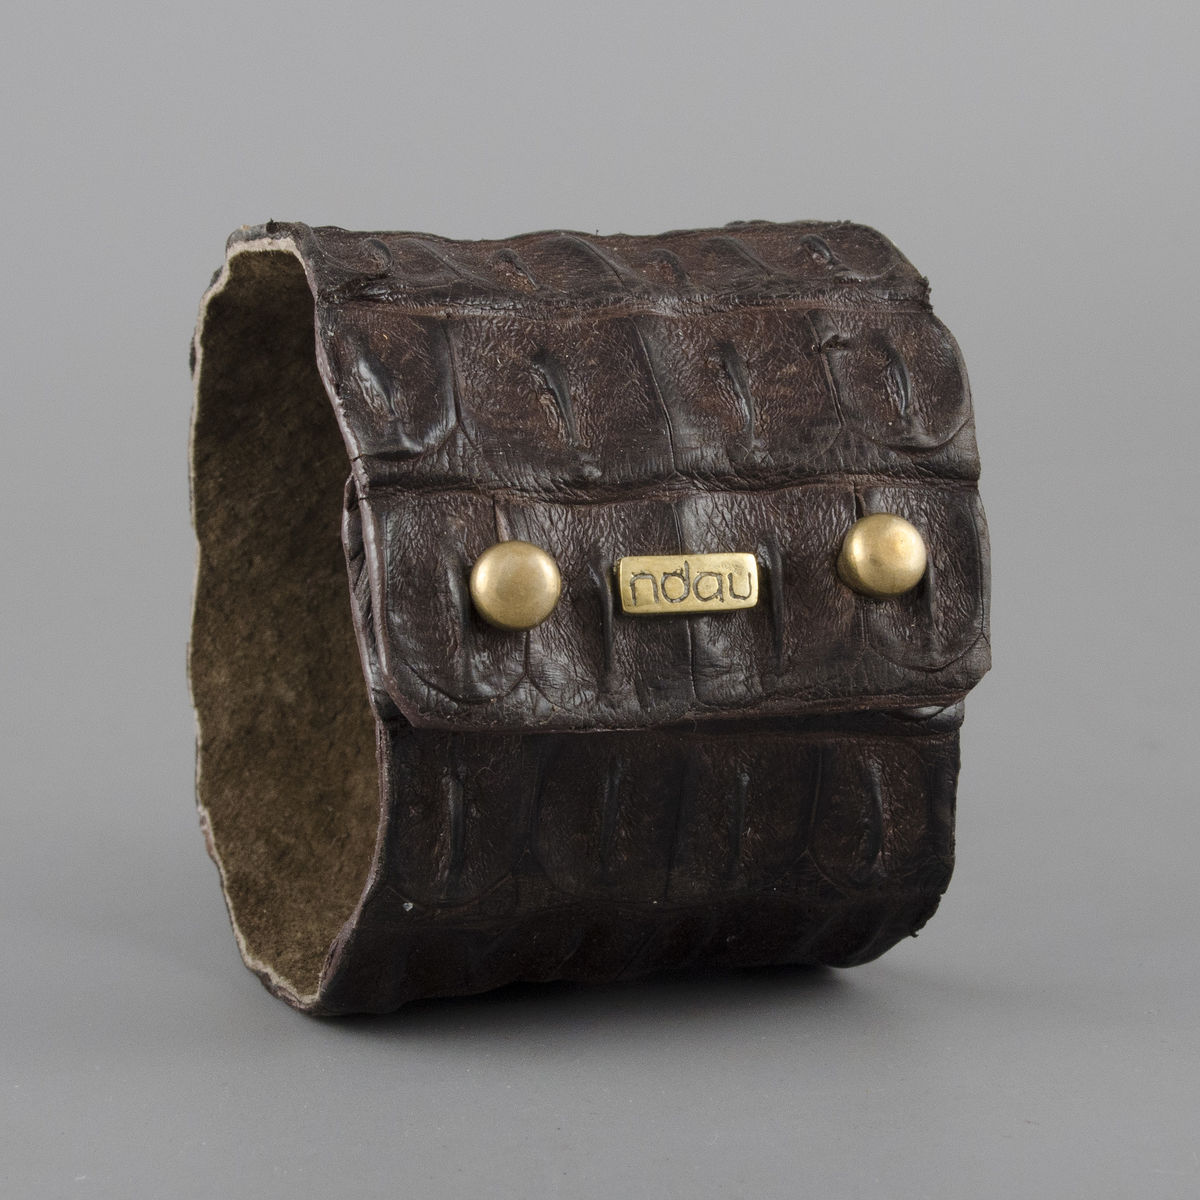 Crocodile Backskin Leather Rock Cuff with Double Holster in Chocolate Brown - product image